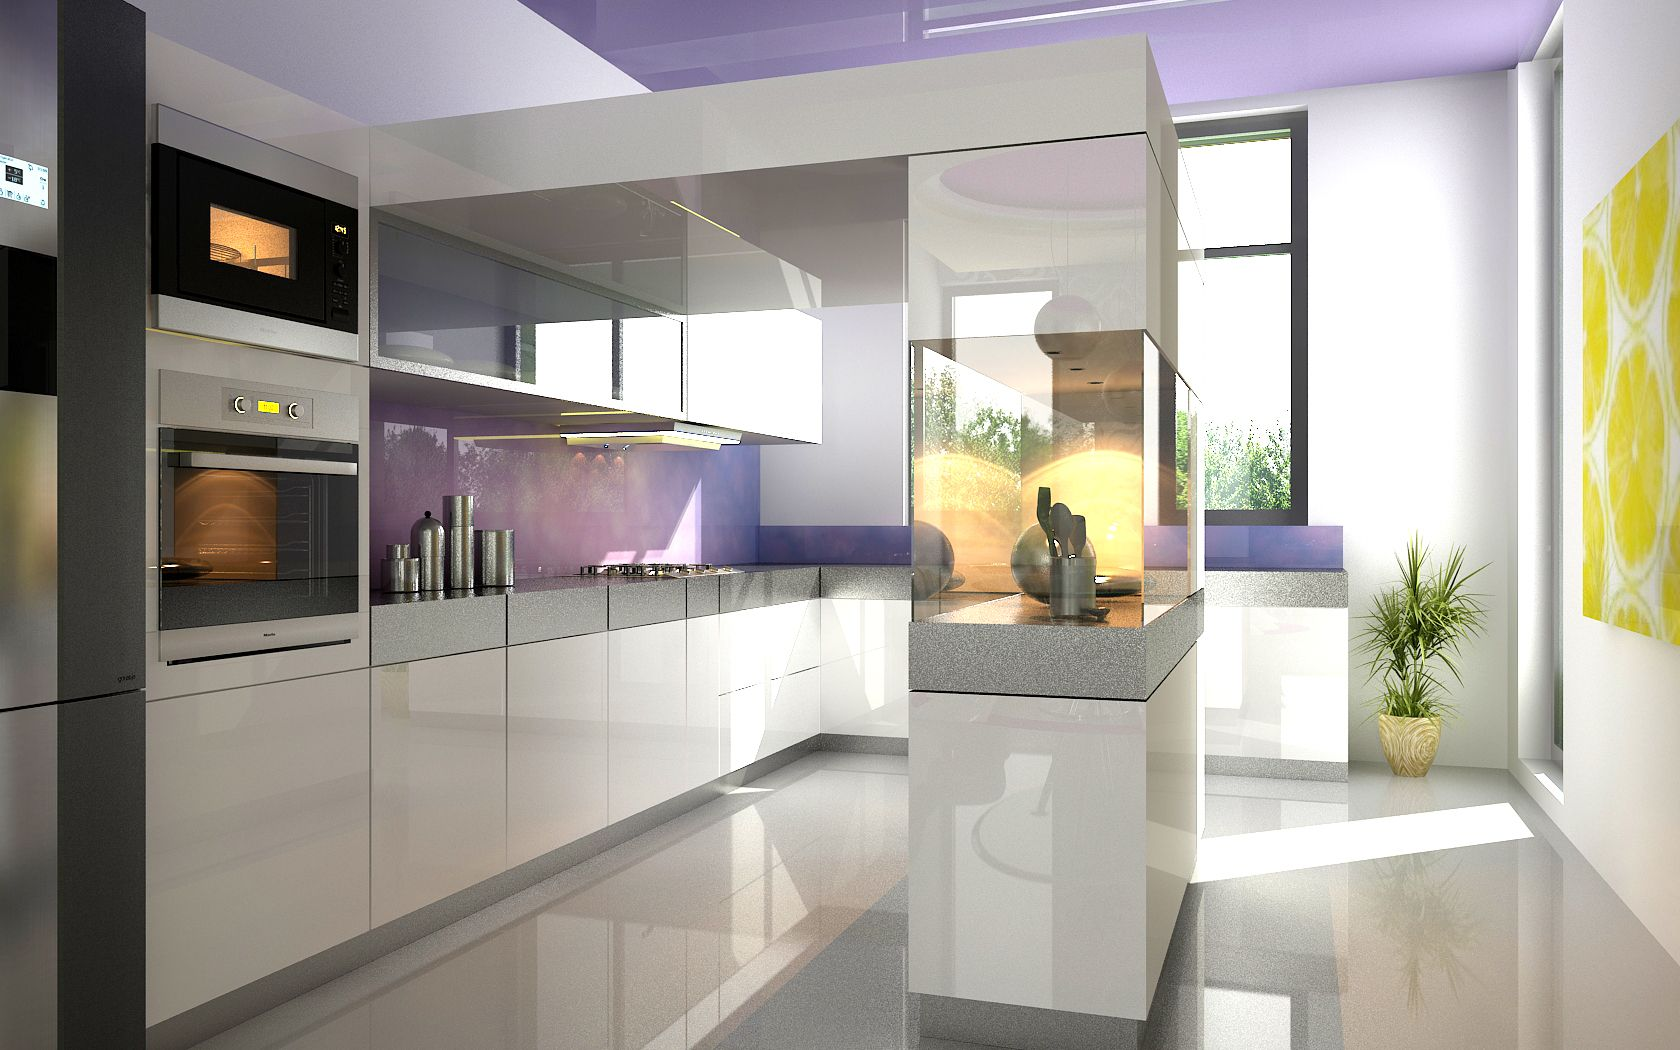 Kitchen Self Design Adorable Hightech Kitchen Very Simple And The Window Space Is Large Inspiration Design